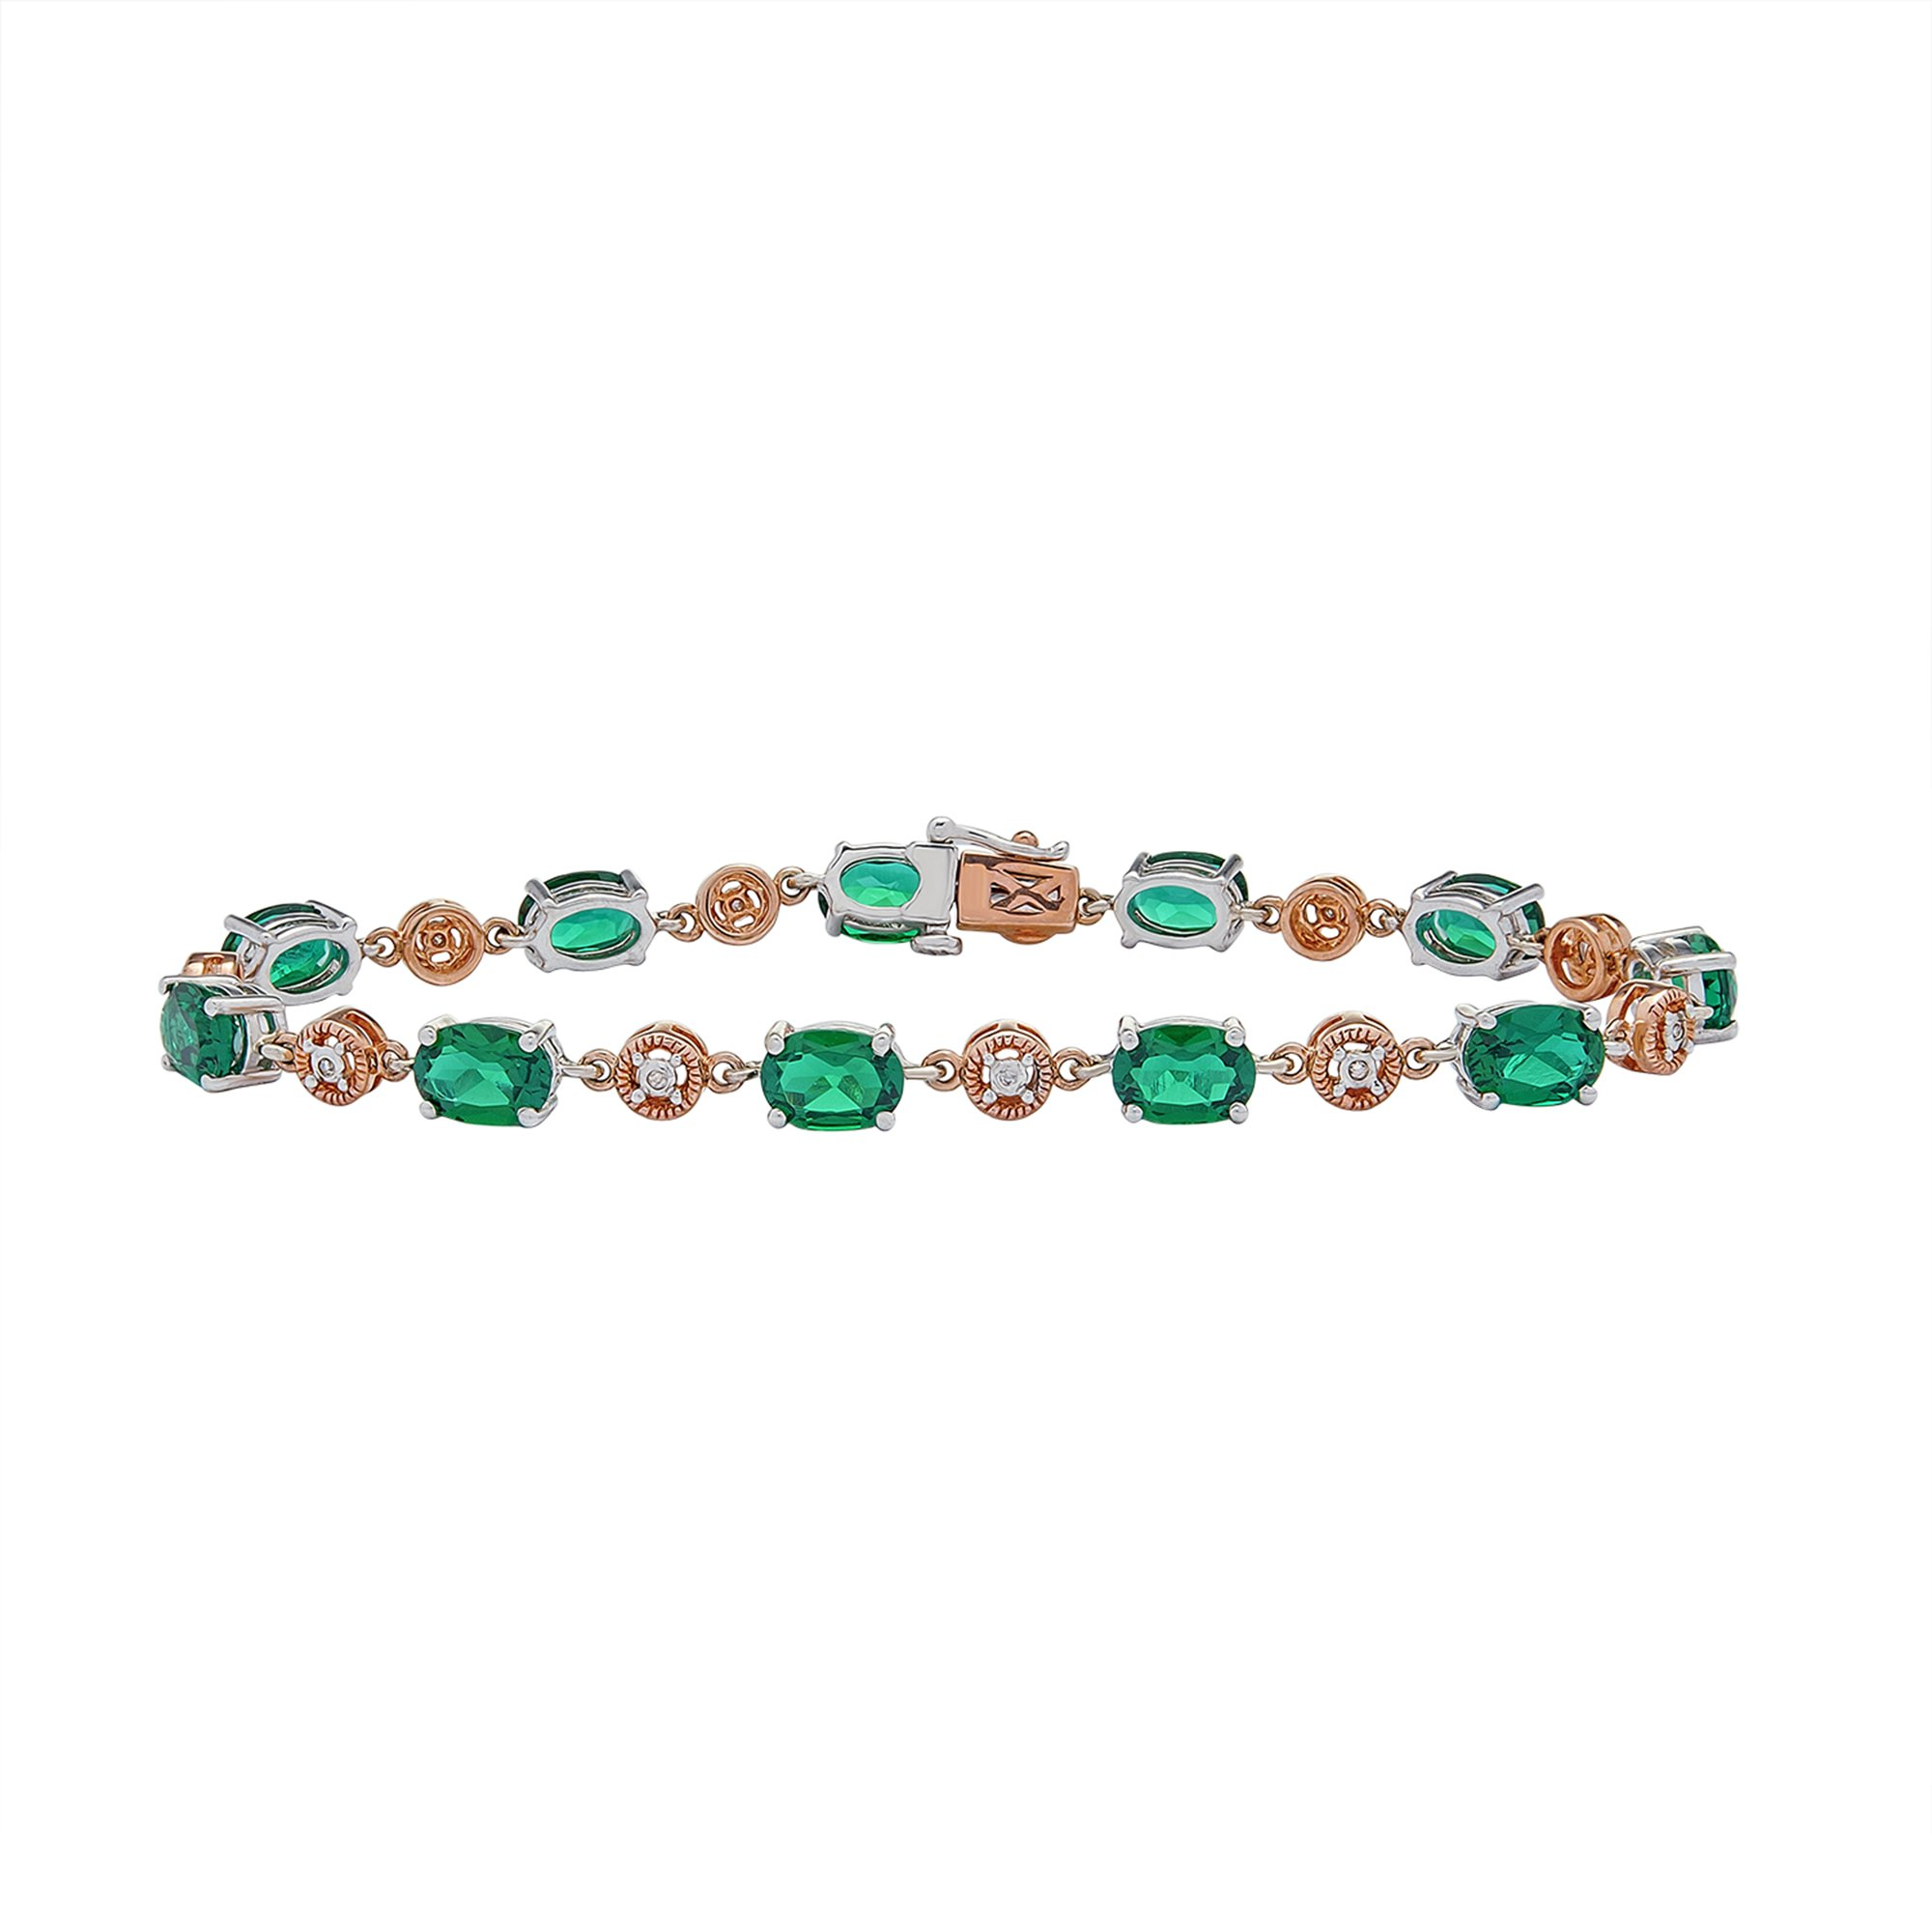 10K Rose Gold & Sterling Silver Diamond Accented and 7.92 CT Emerald Bracelet.